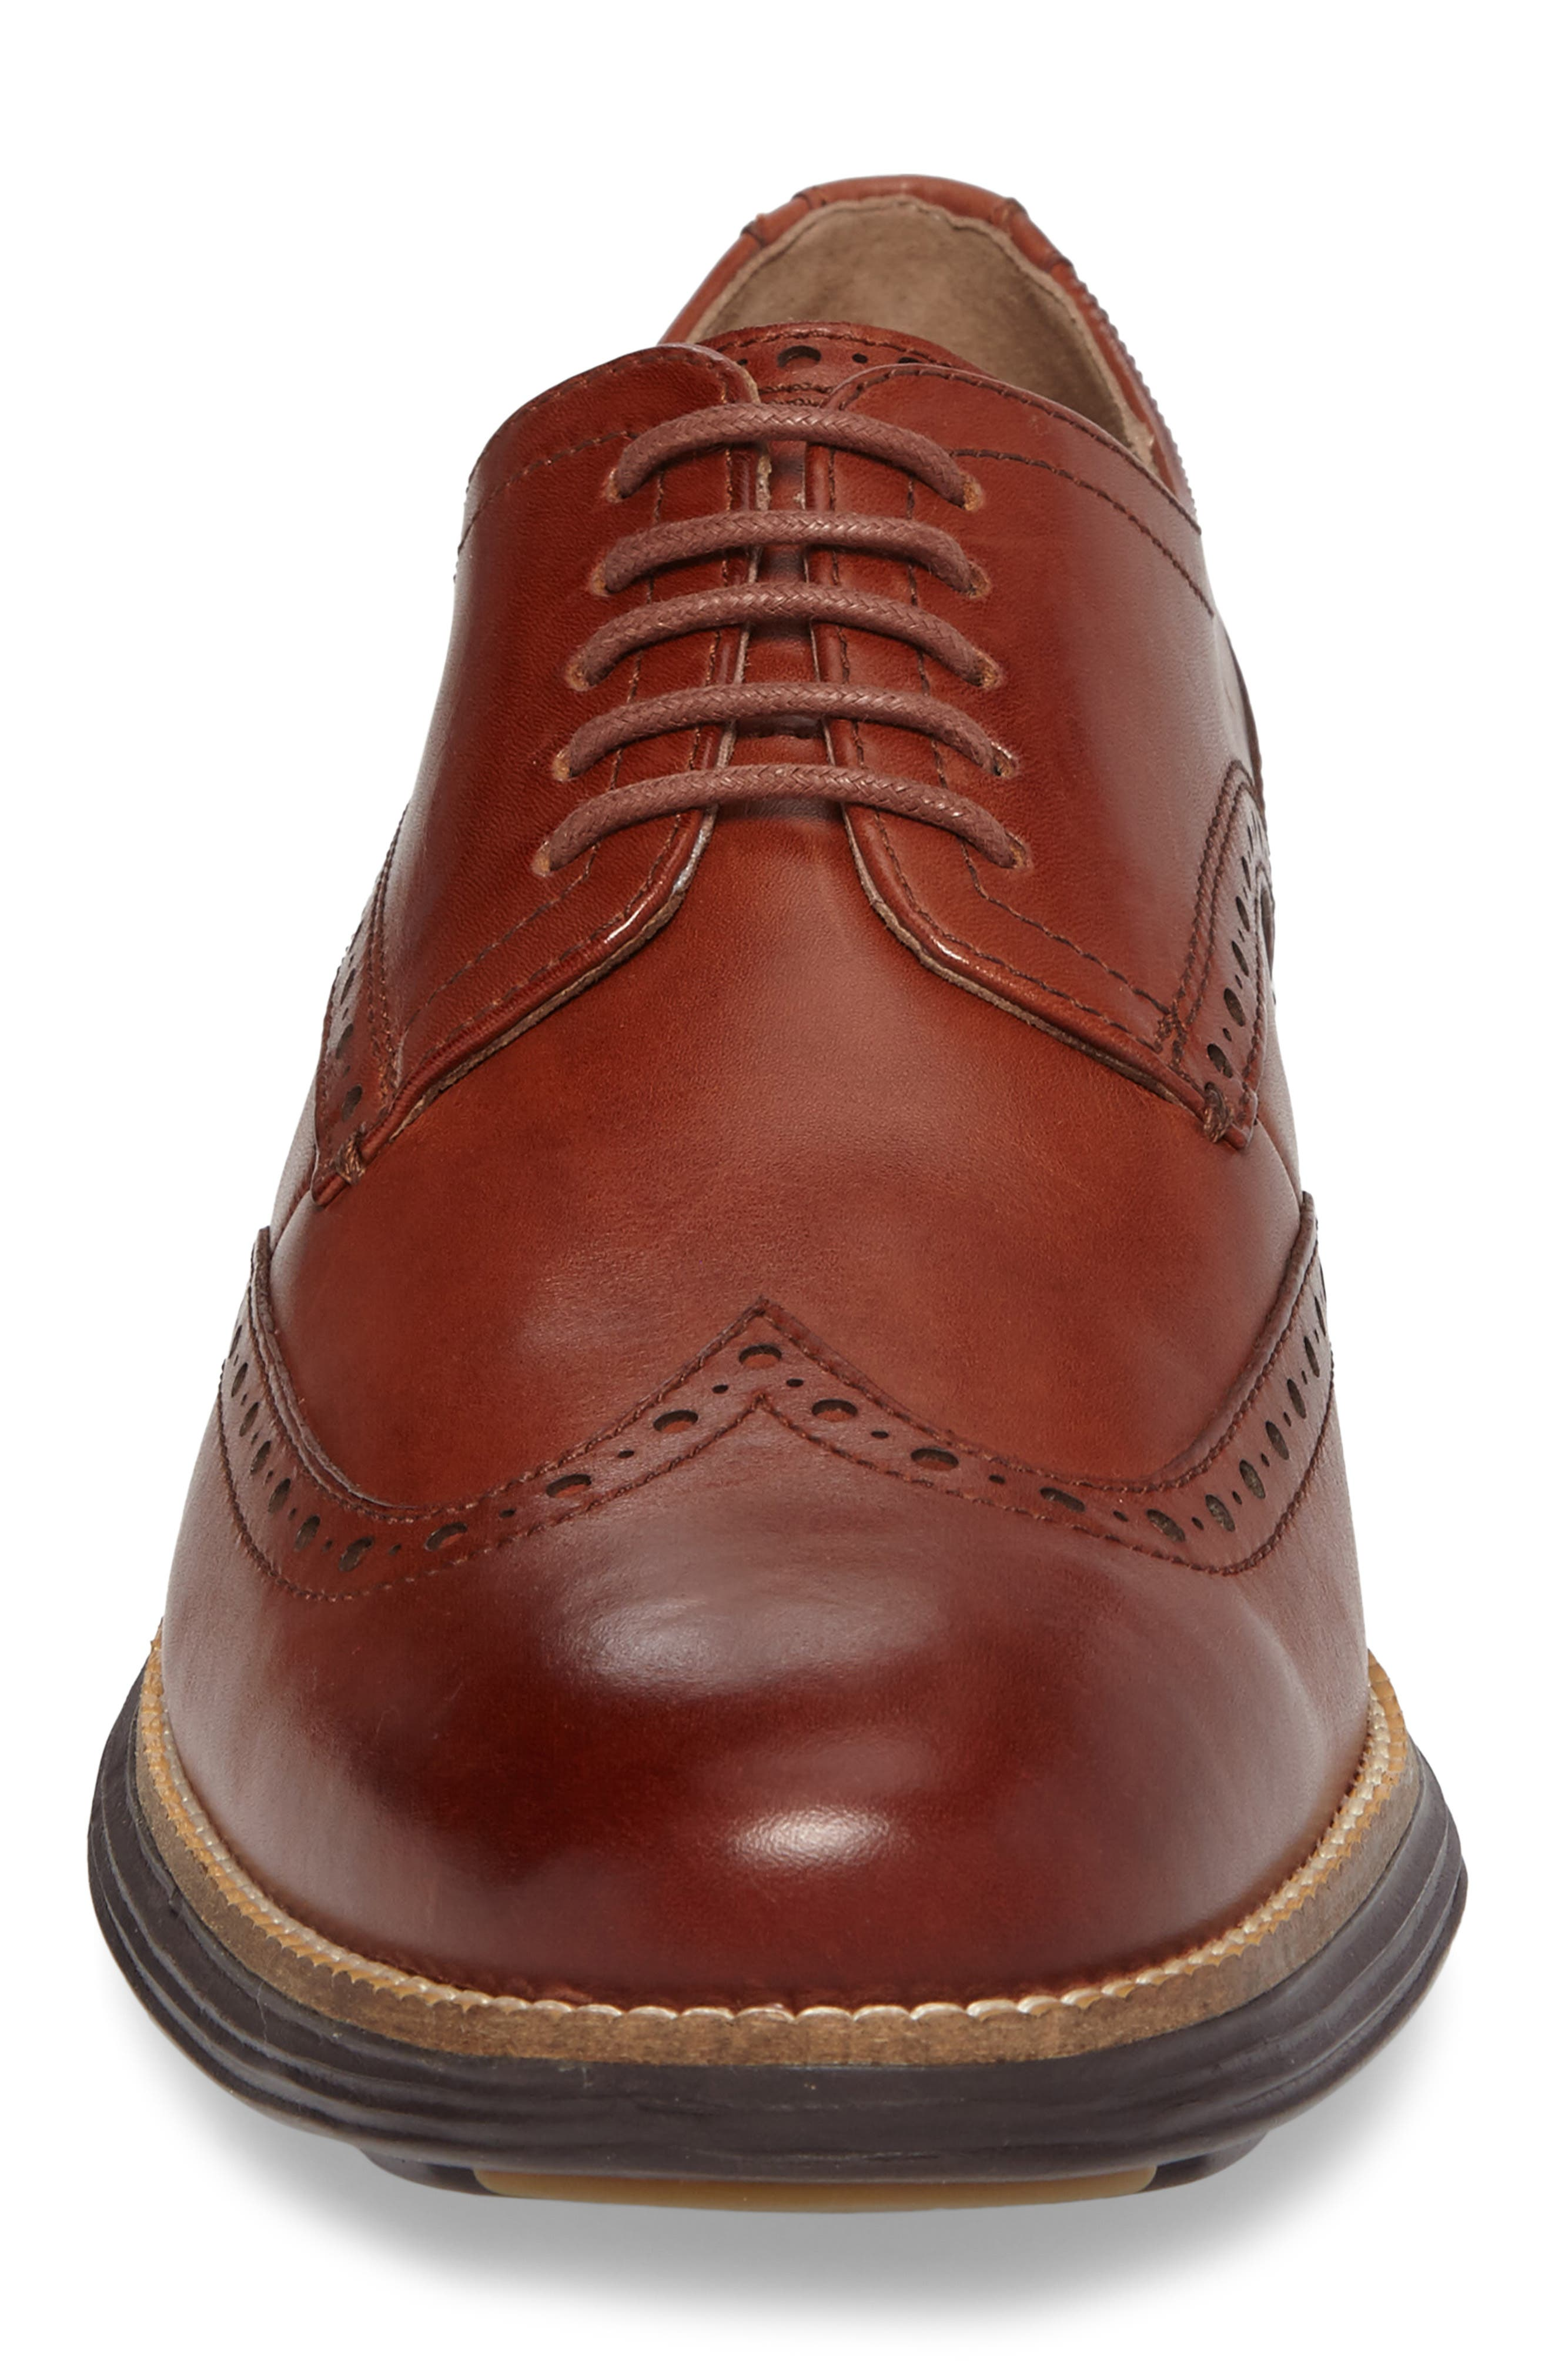 COLE HAAN, Original Grand Wingtip, Alternate thumbnail 4, color, WOODBURY/ JAVA LEATHER